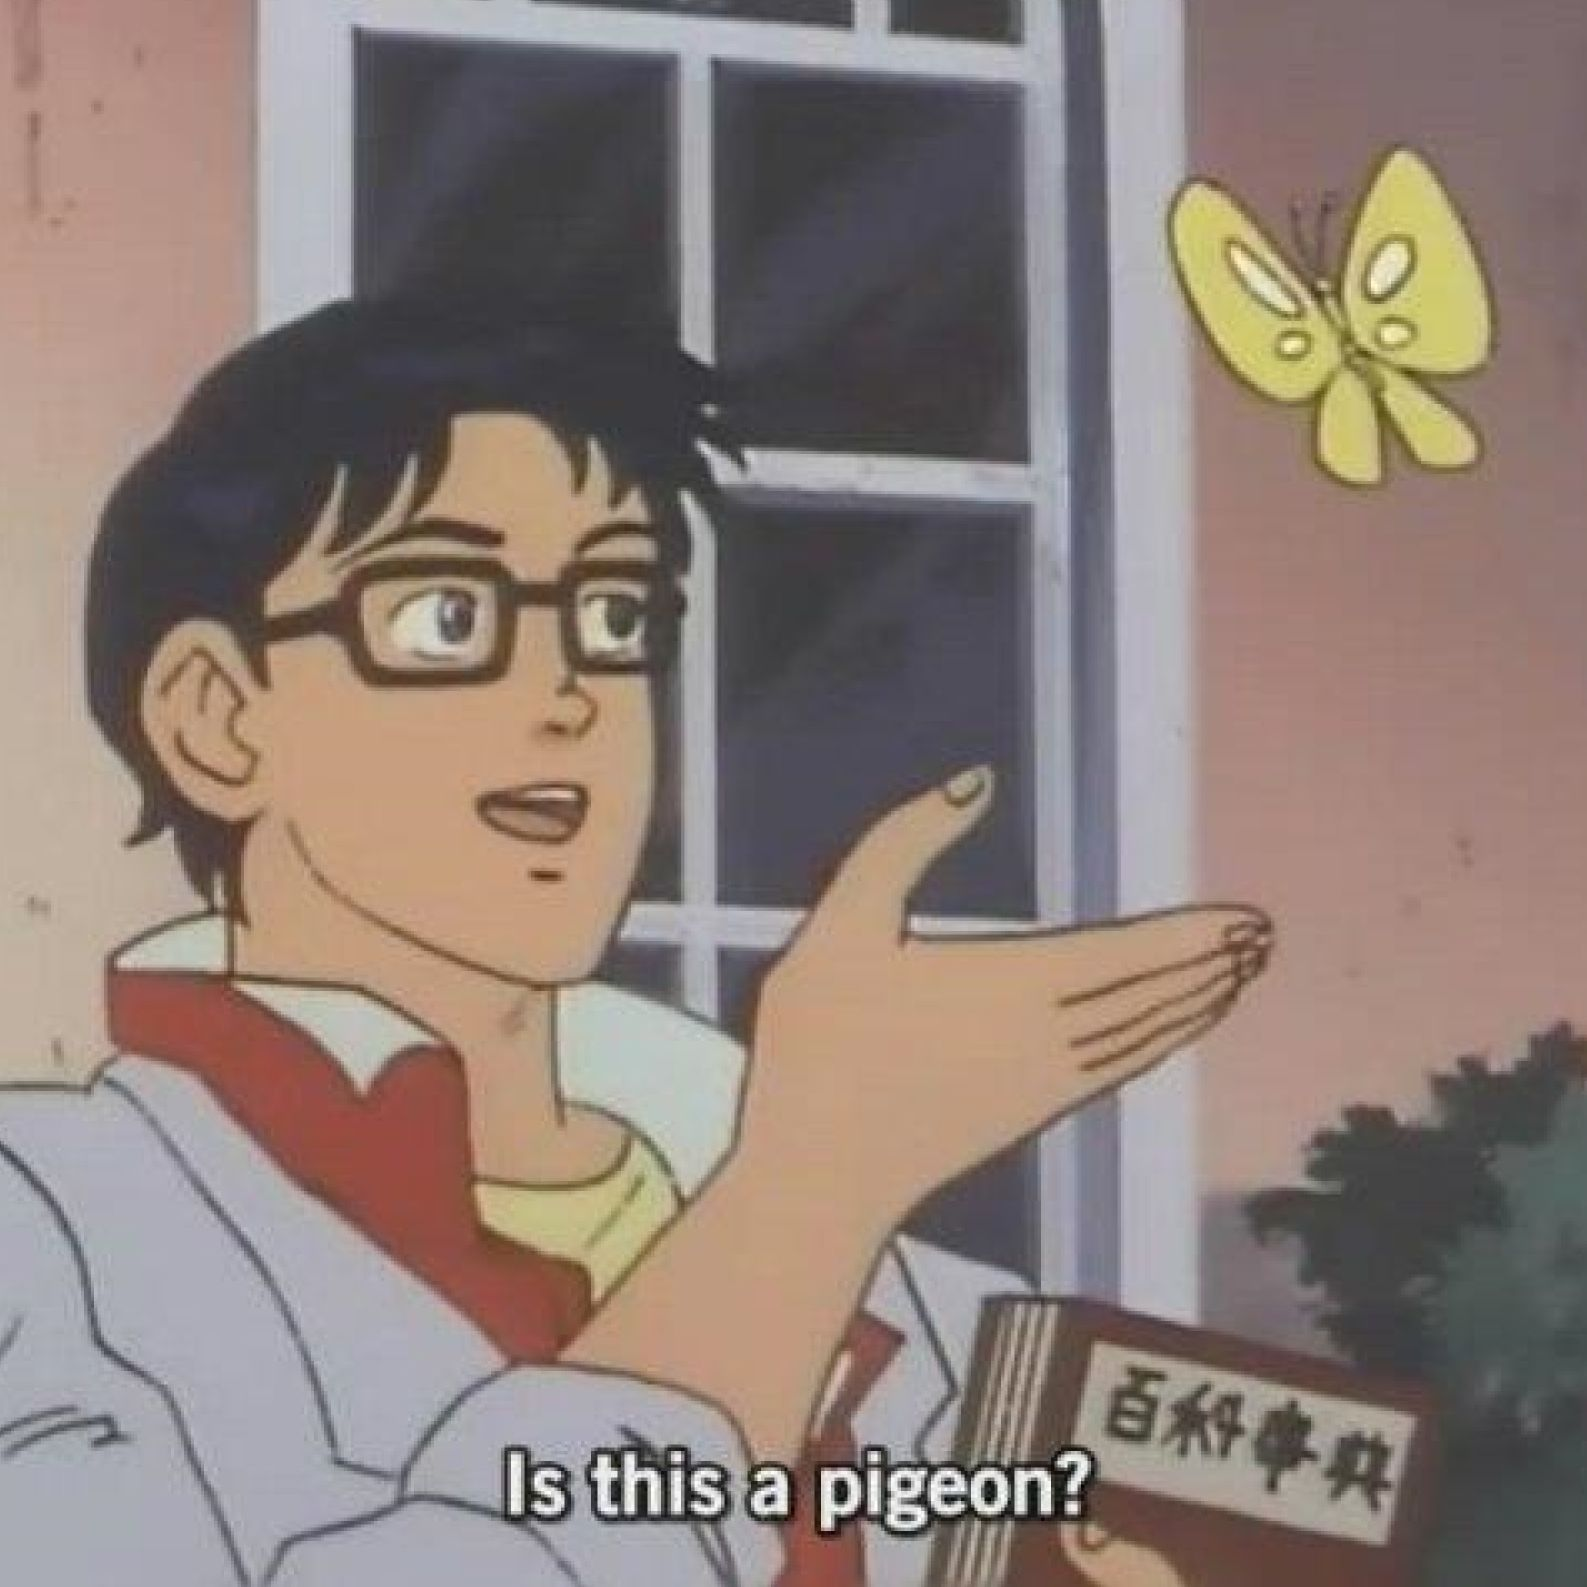 High Quality is this a pigeon? Blank Meme Template